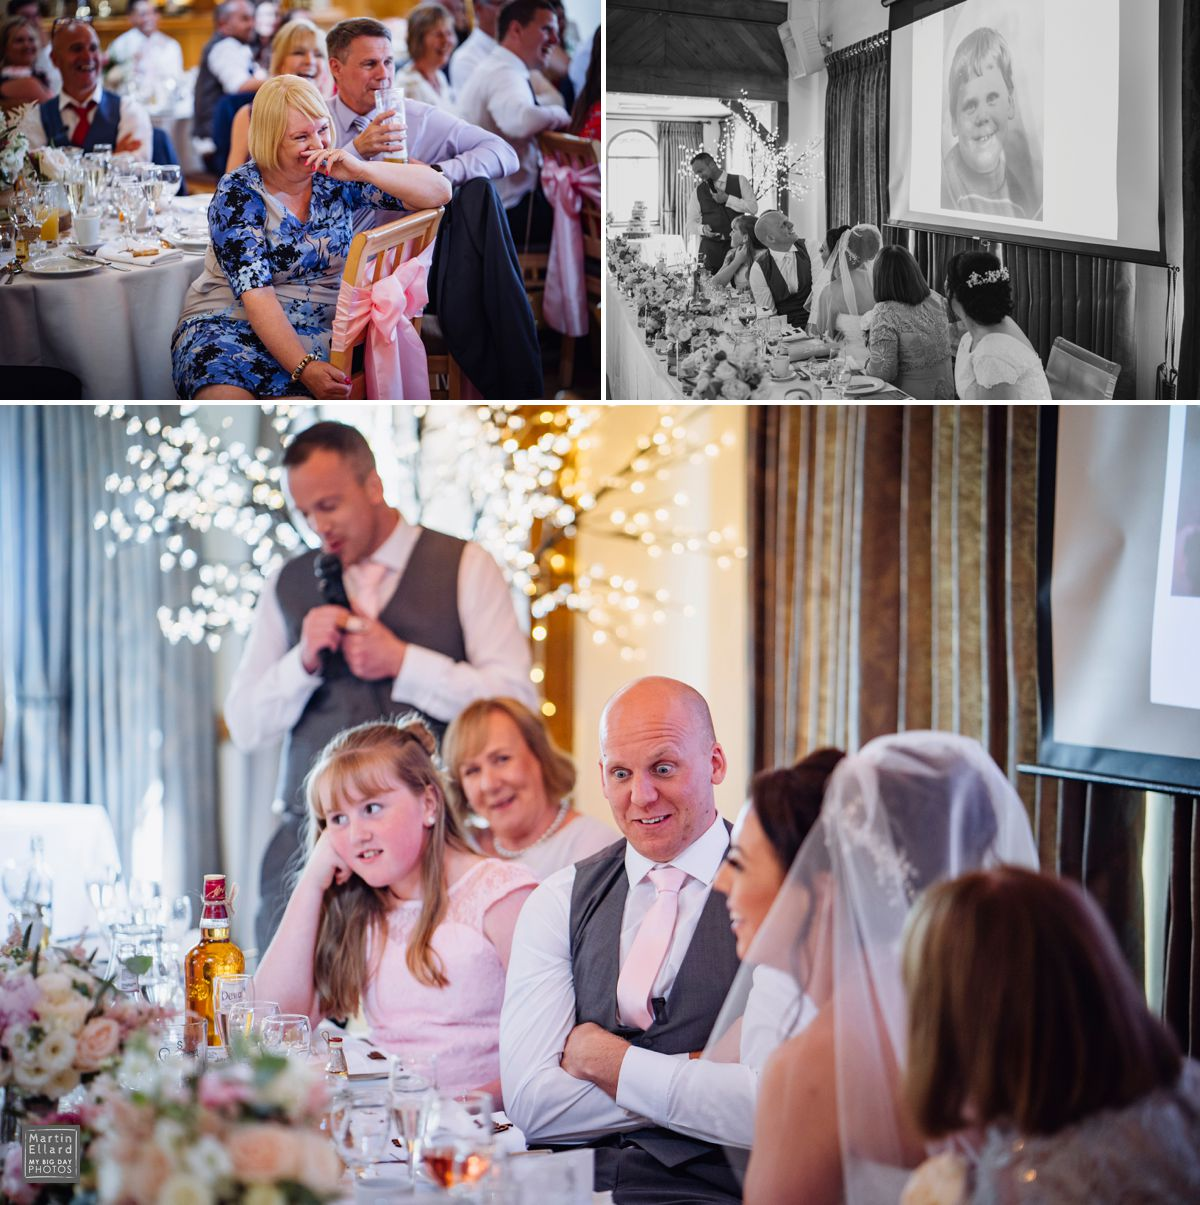 The King Arthur Hotel wedding photographer